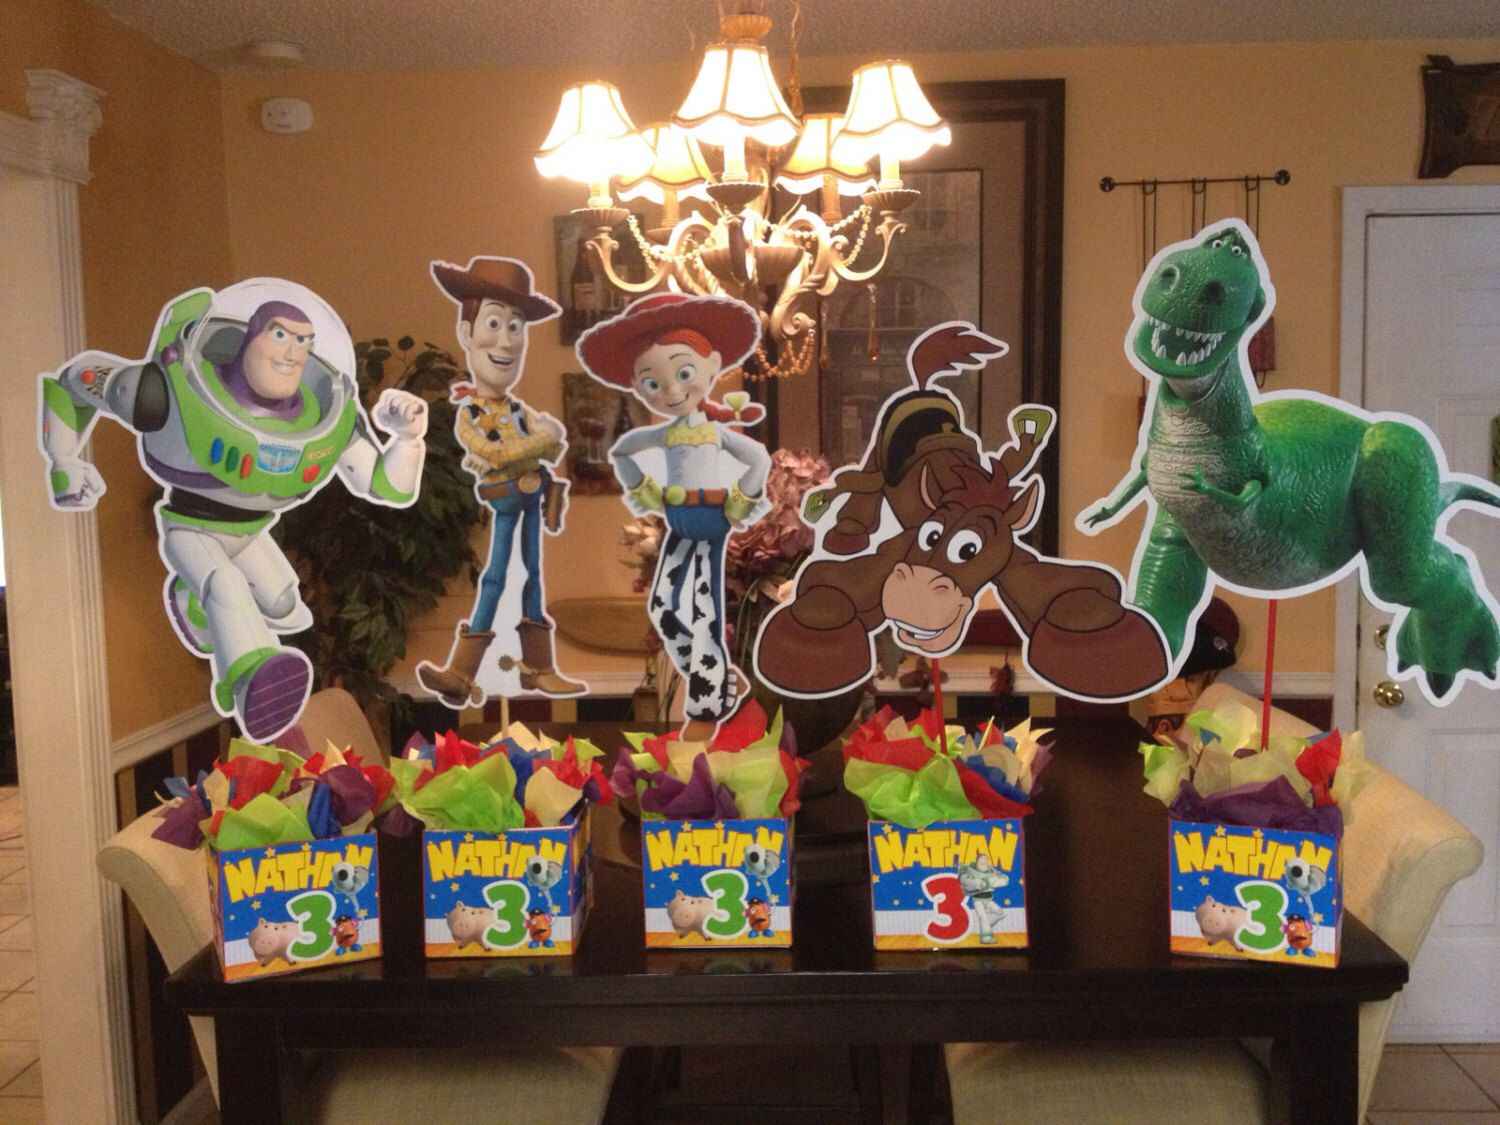 Large Toy Story Centerpieces Double Sided Personalized by JuliousScissor on Etsy //.etsy.com/listing/237997919/large-toy-story-centerpieces -double : toy story decoration ideas - www.pureclipart.com